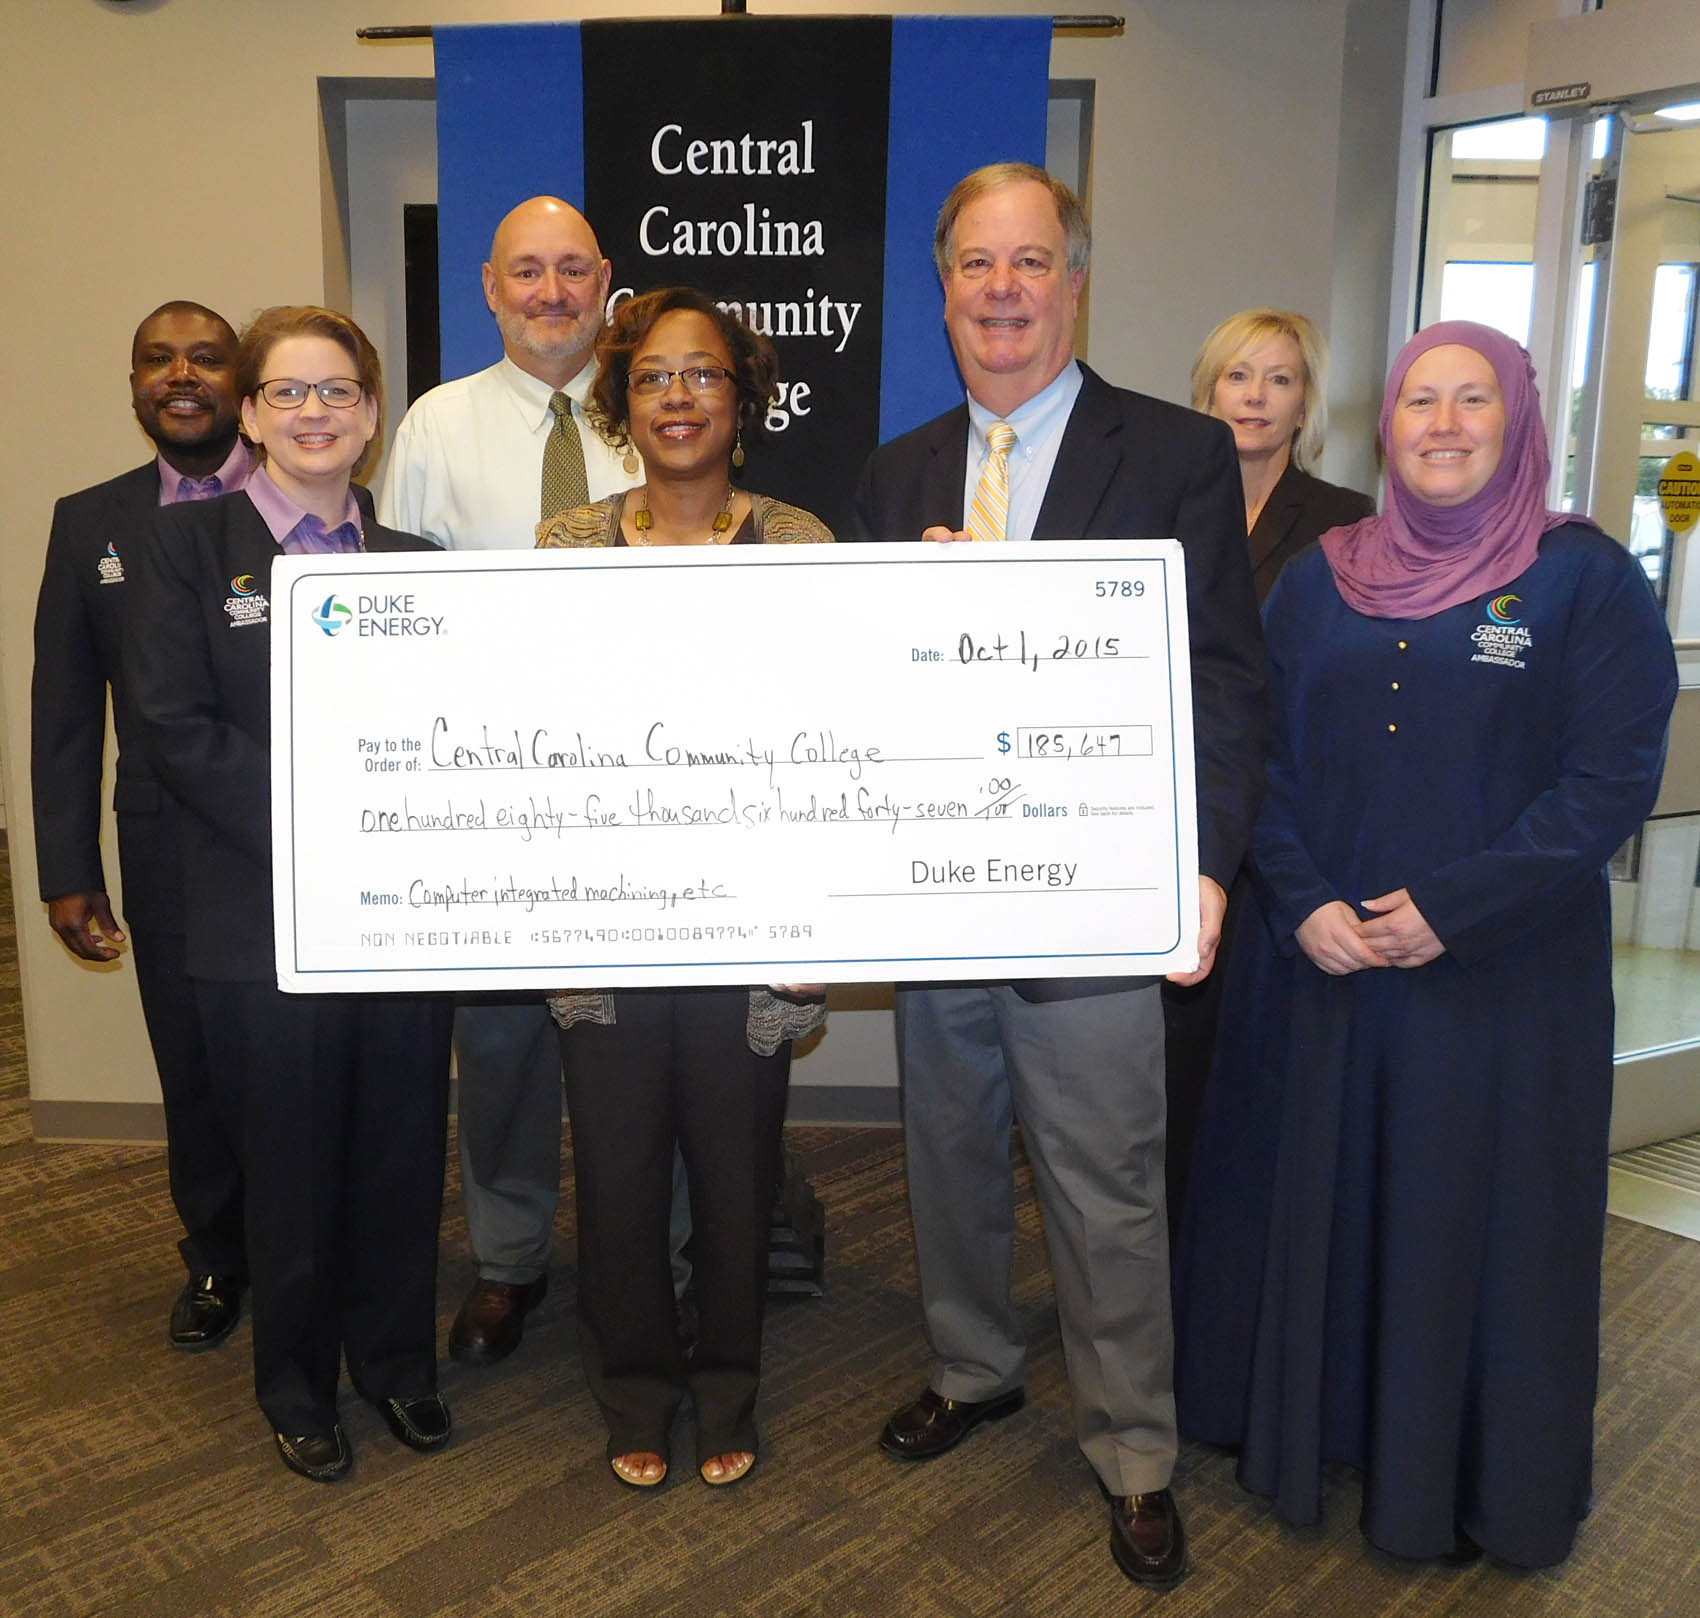 Click to enlarge,  Indira Everett (front, second from left), Duke Energy district manager, presents the Duke Energy Foundation check to Central Carolina Community College President Dr. T.E. Marchant (front, second from right). The funds will be used to purchase updated equipment and equipment enhancements for programs including Computer Integrated Machining, Welding Technology, Industrial Systems Technology, and Laser and Photonics.